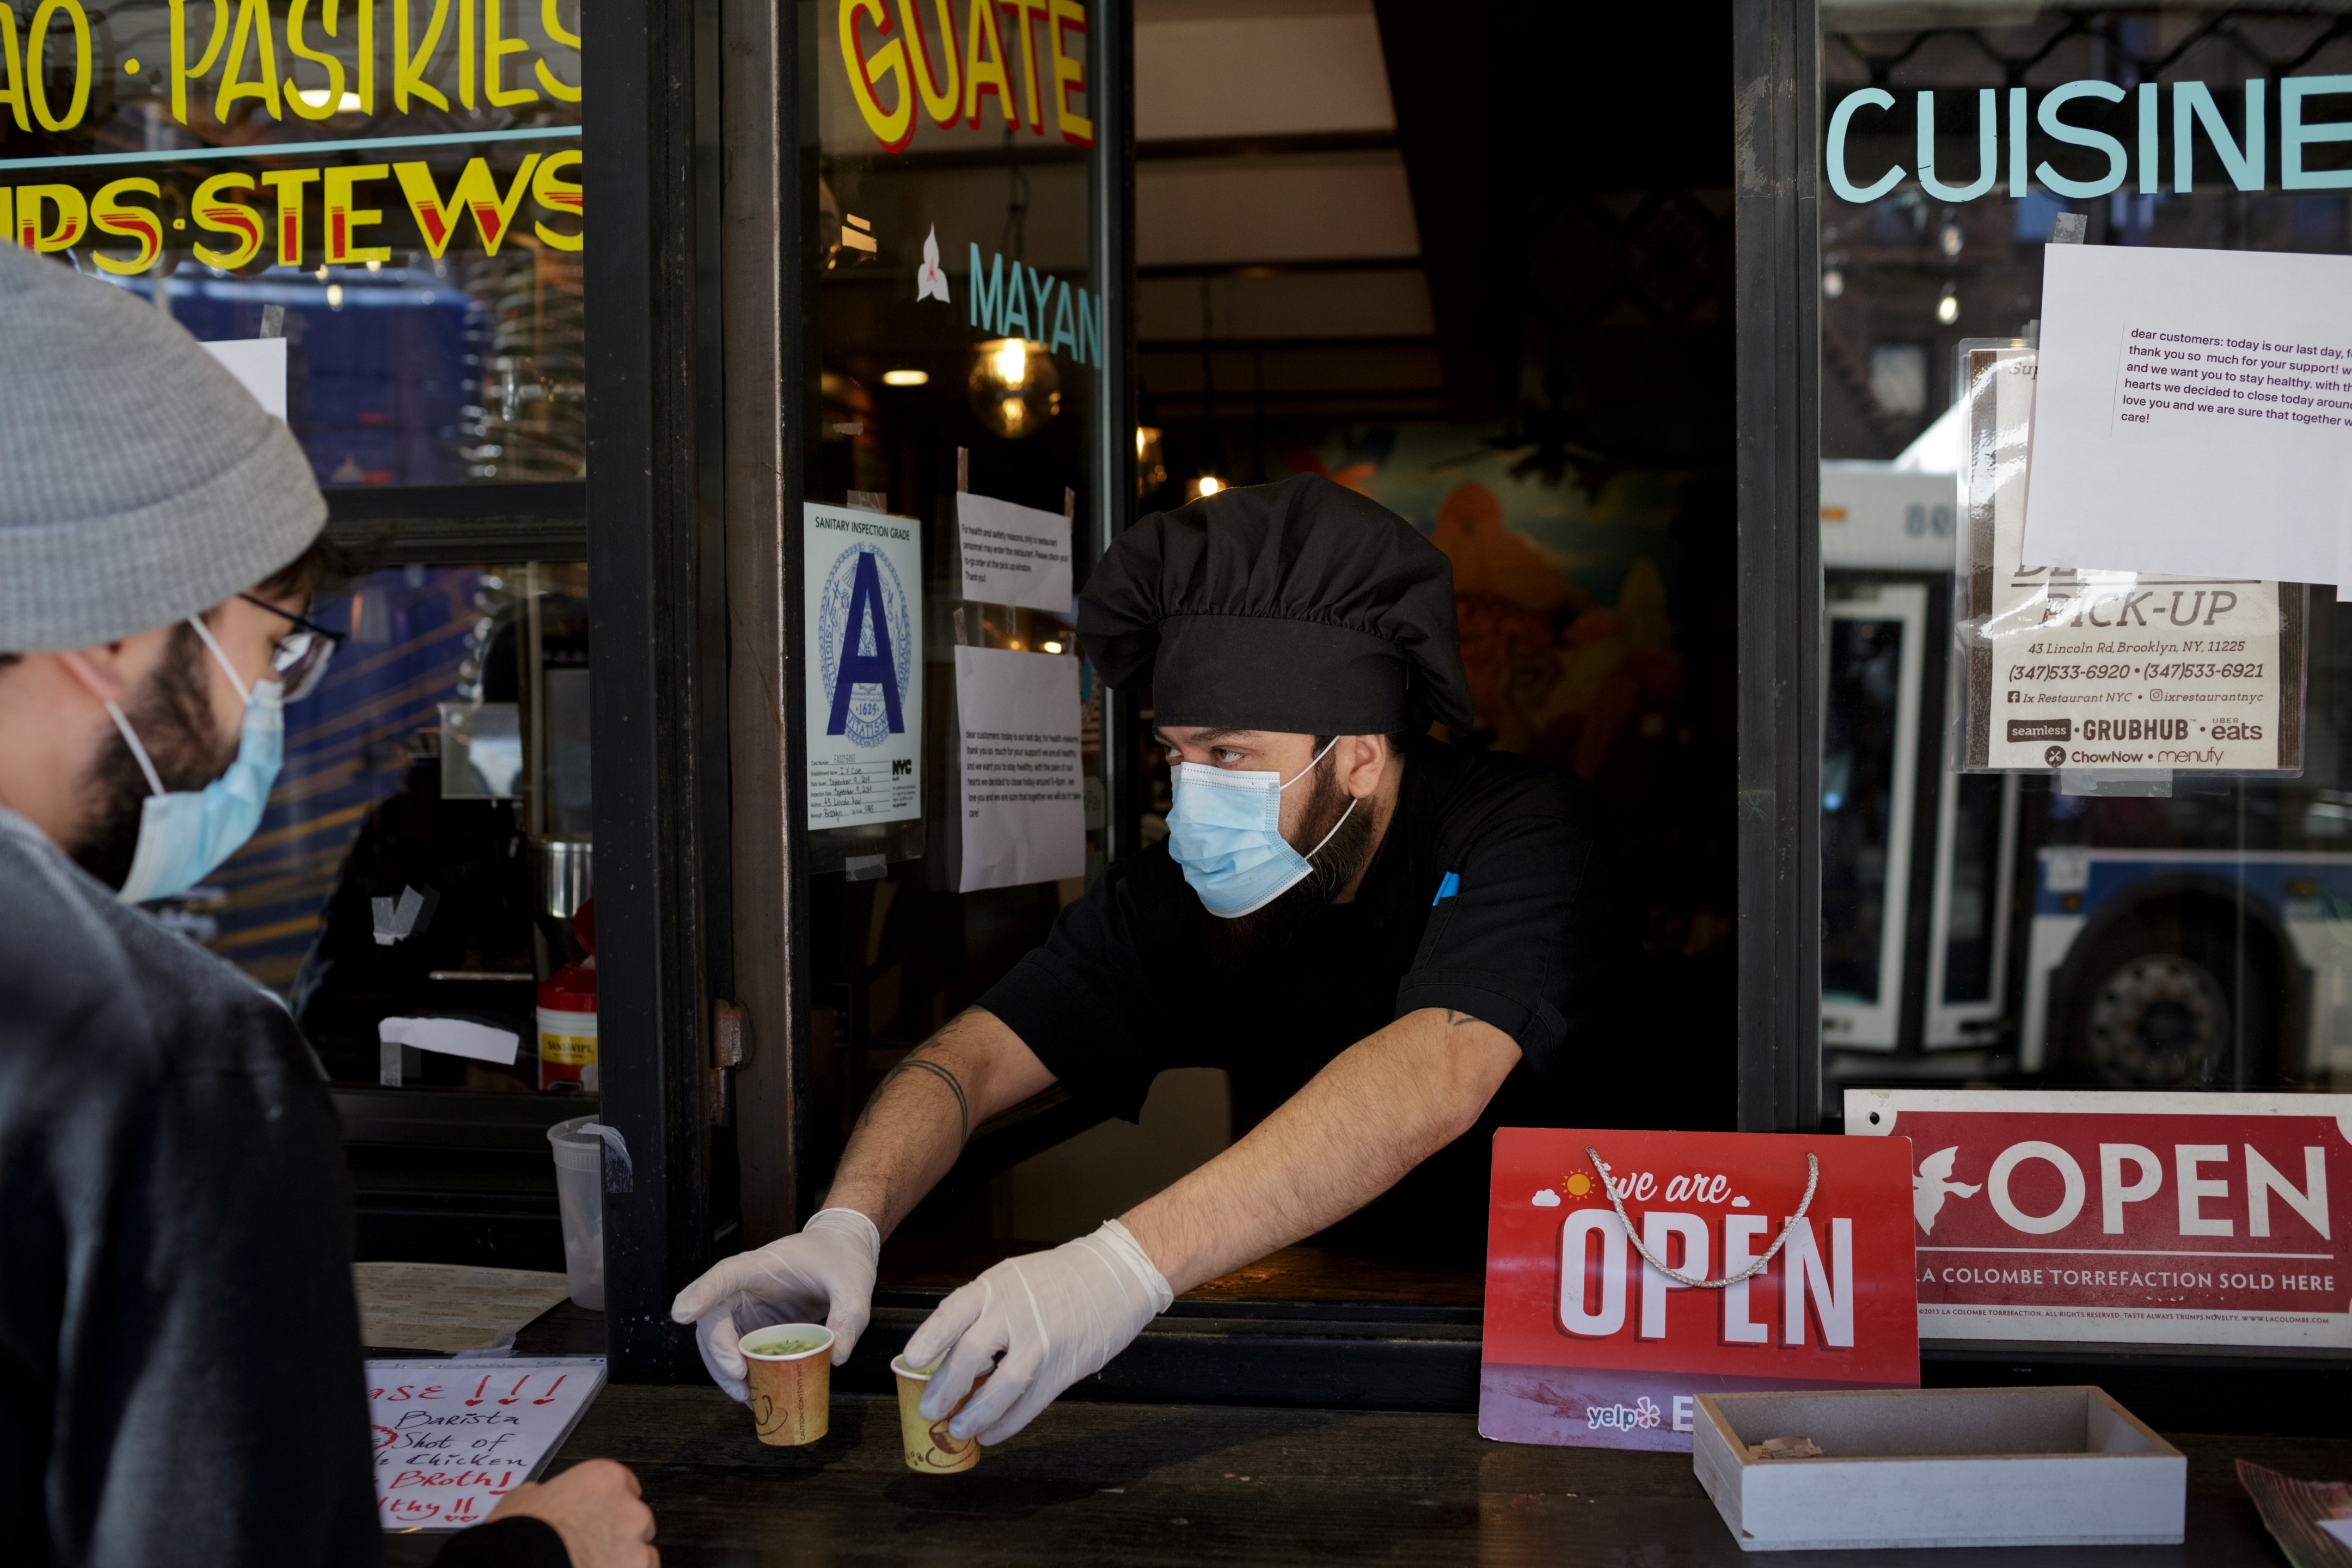 Chef and part-owner Jorge Cardenas, 41, hands customers free shots of broth while they wait for their takeout order outside of Ix restaurant in the Brooklyn borough of New York City, U.S., on April 2, 2020 amid the CCP virus outbreak. (Anna Watts/Reuters)